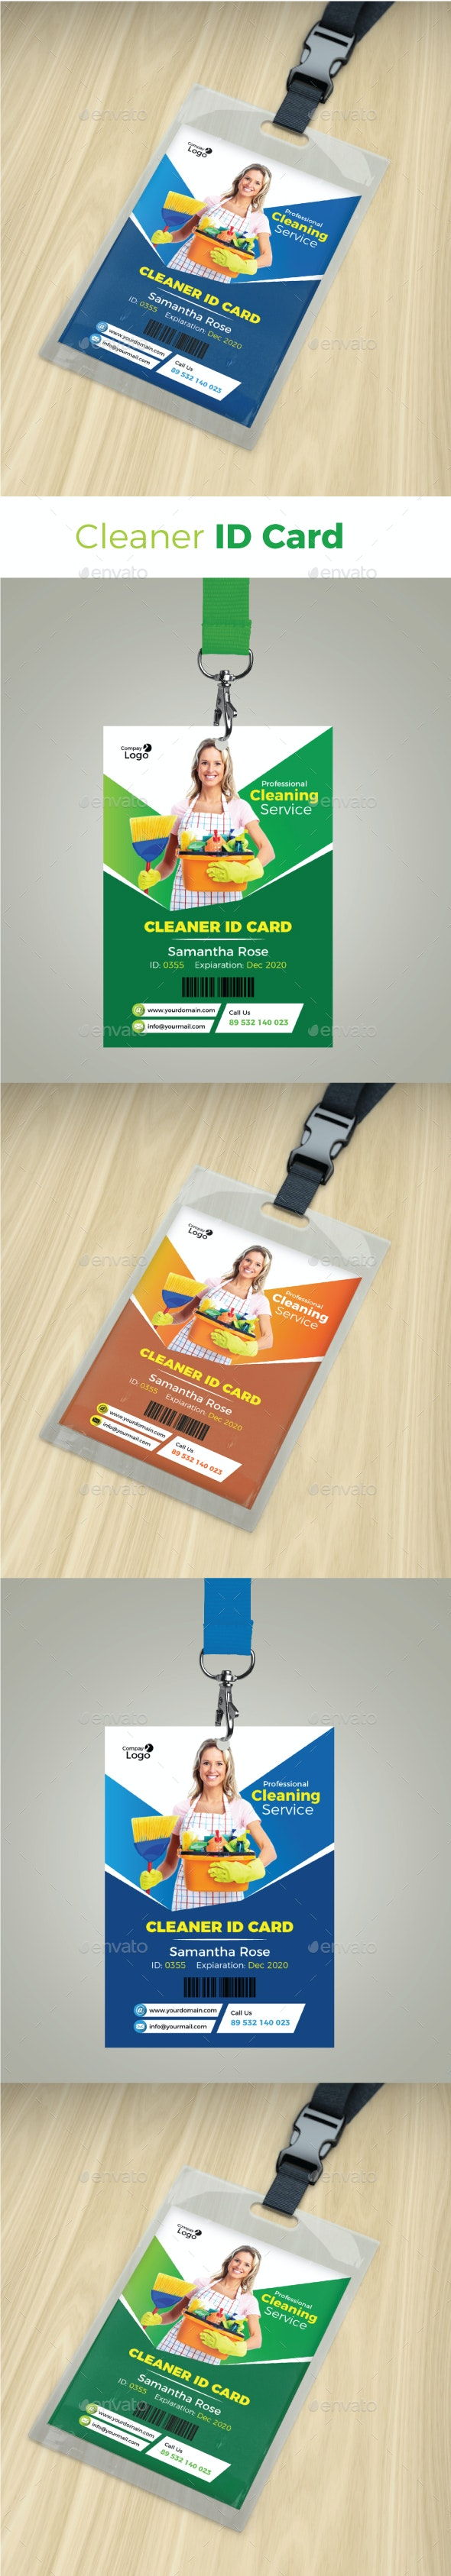 Cleaner Id Card - Miscellaneous Print Templates